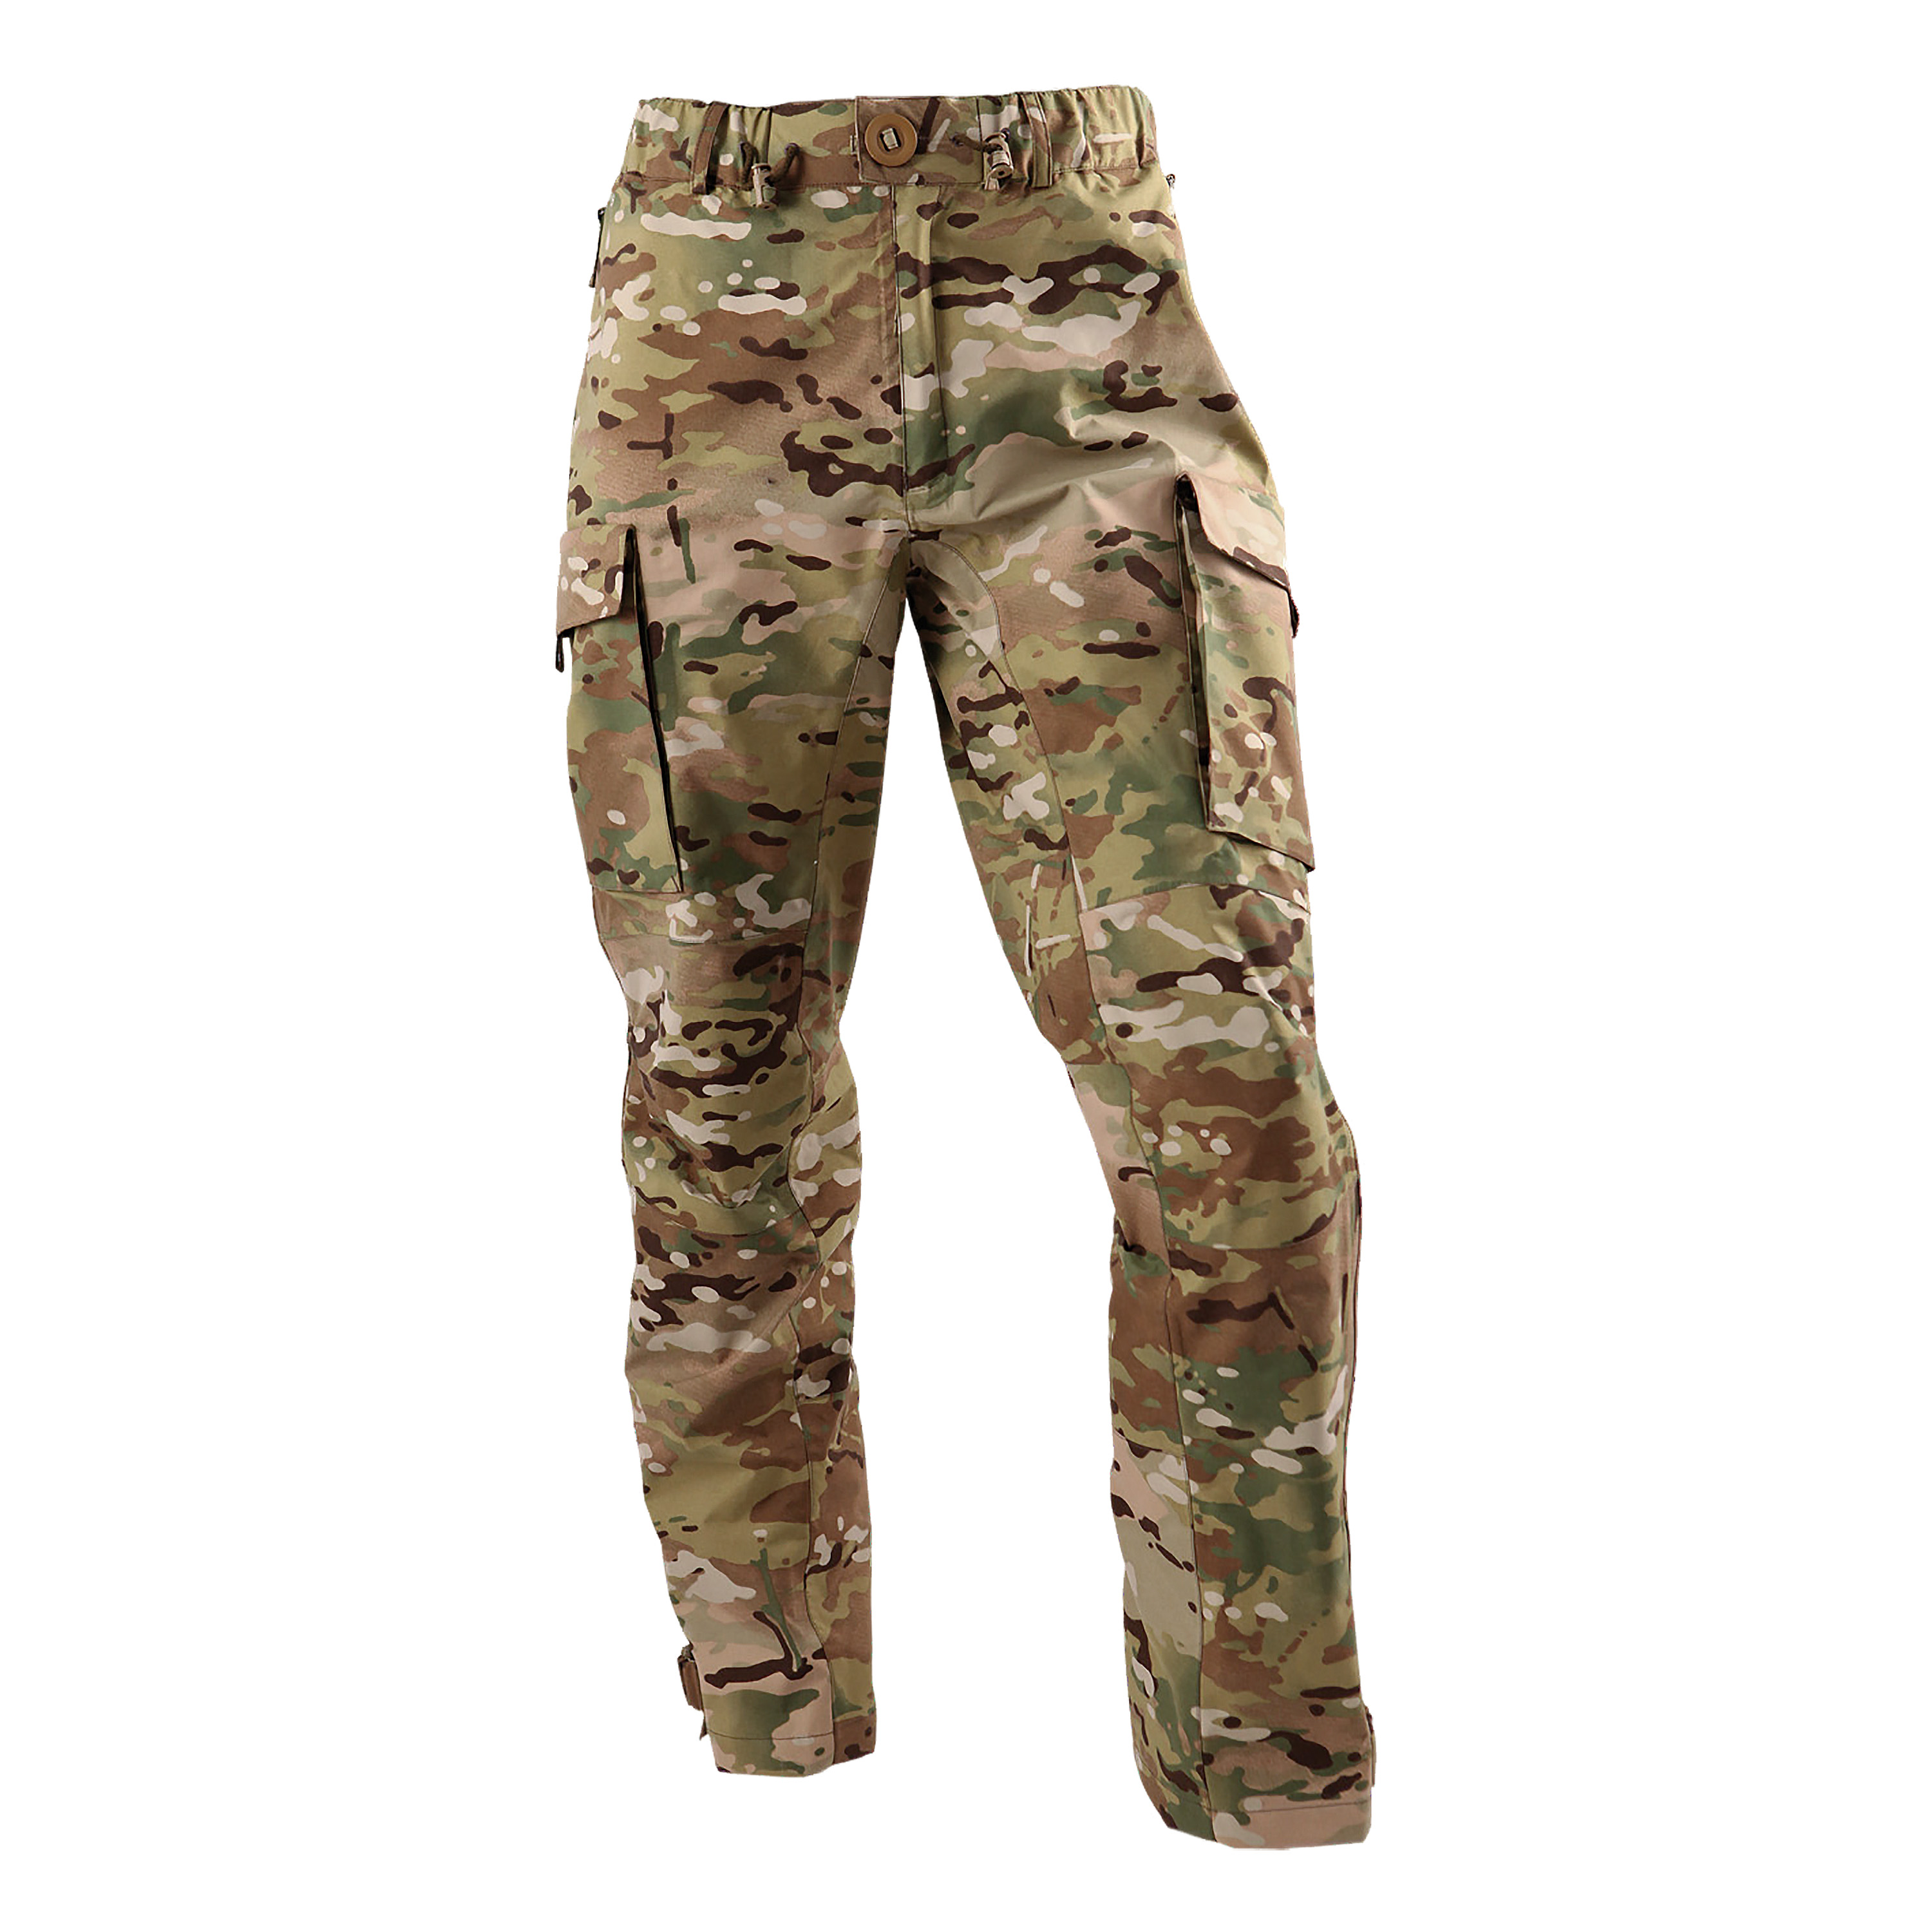 Wet Weather Pants Carinthia Tactical multicam